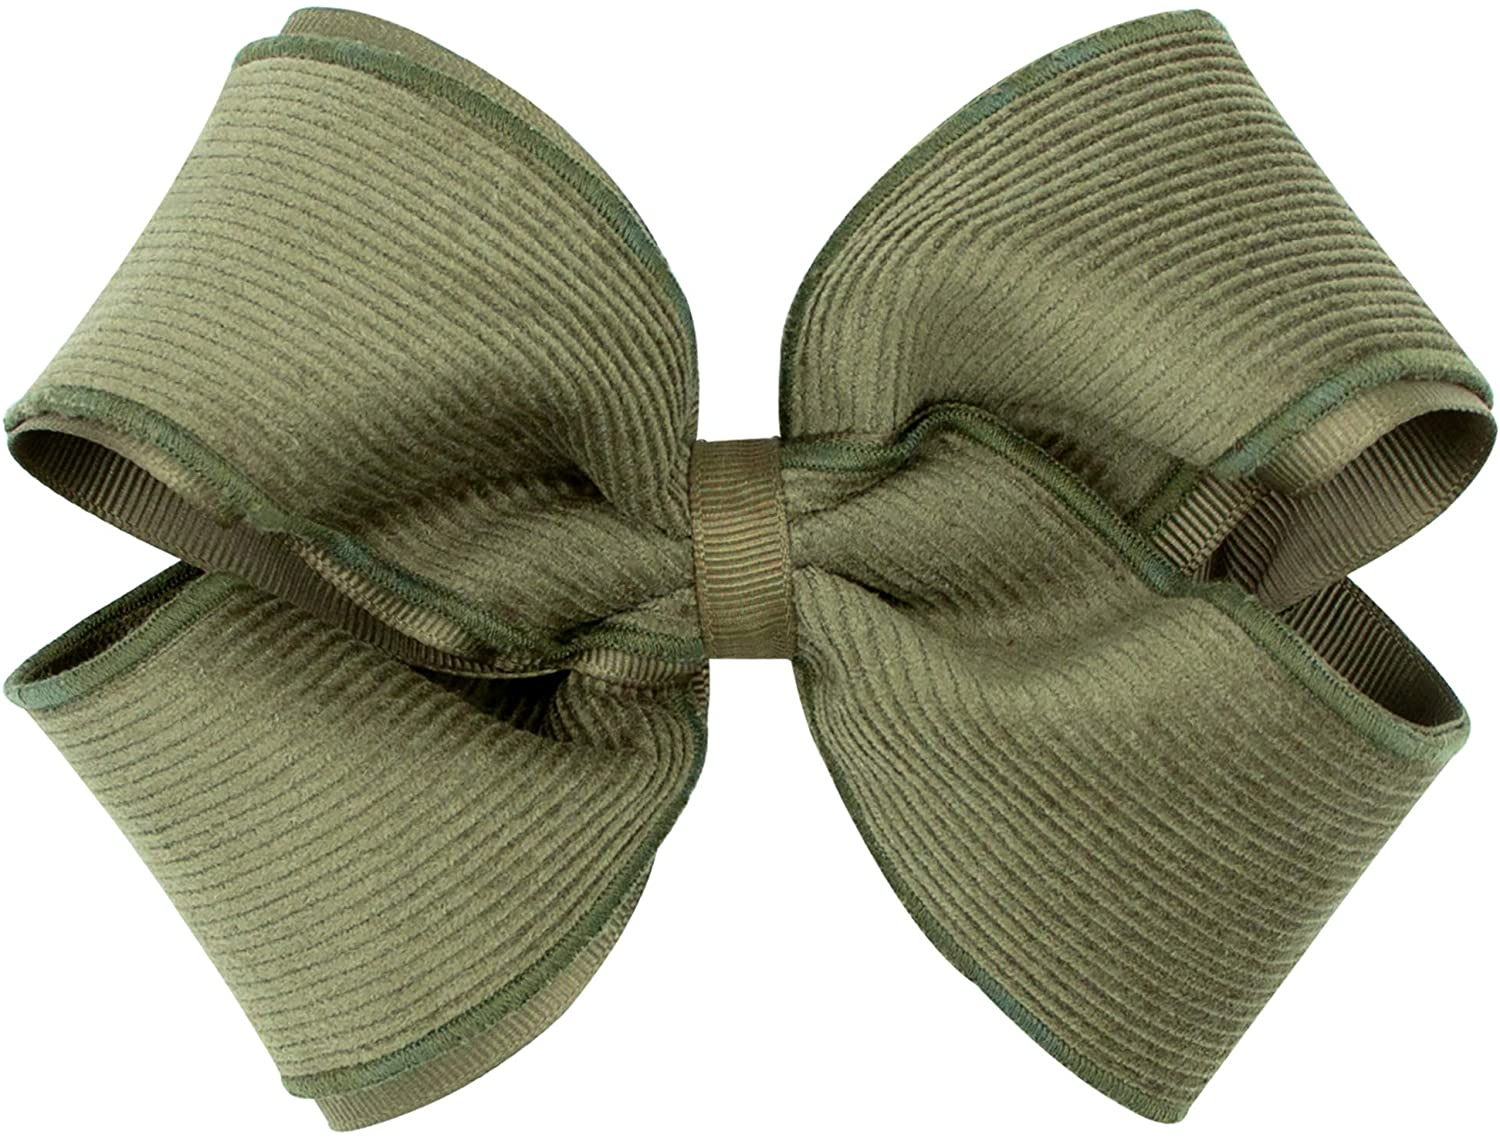 Wee Ones Girl's Small Corduroy Overlay Hair Bow